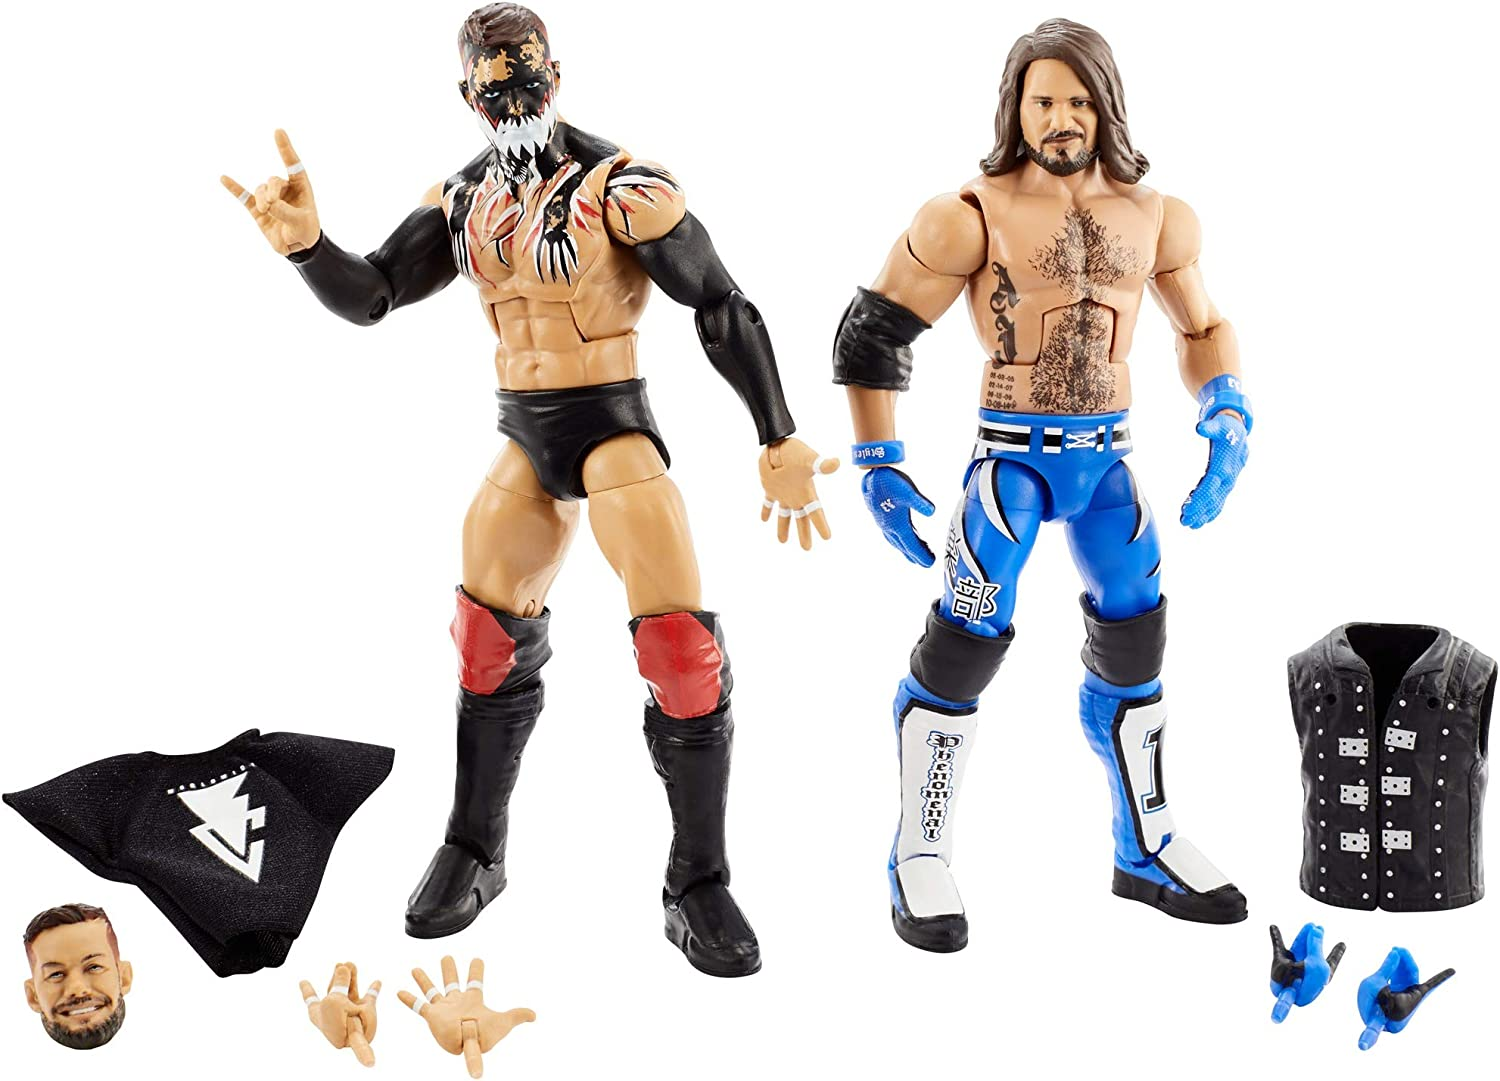 WWE Elite Collection Pack with Finn Bálor & AJ Styles Action Figures